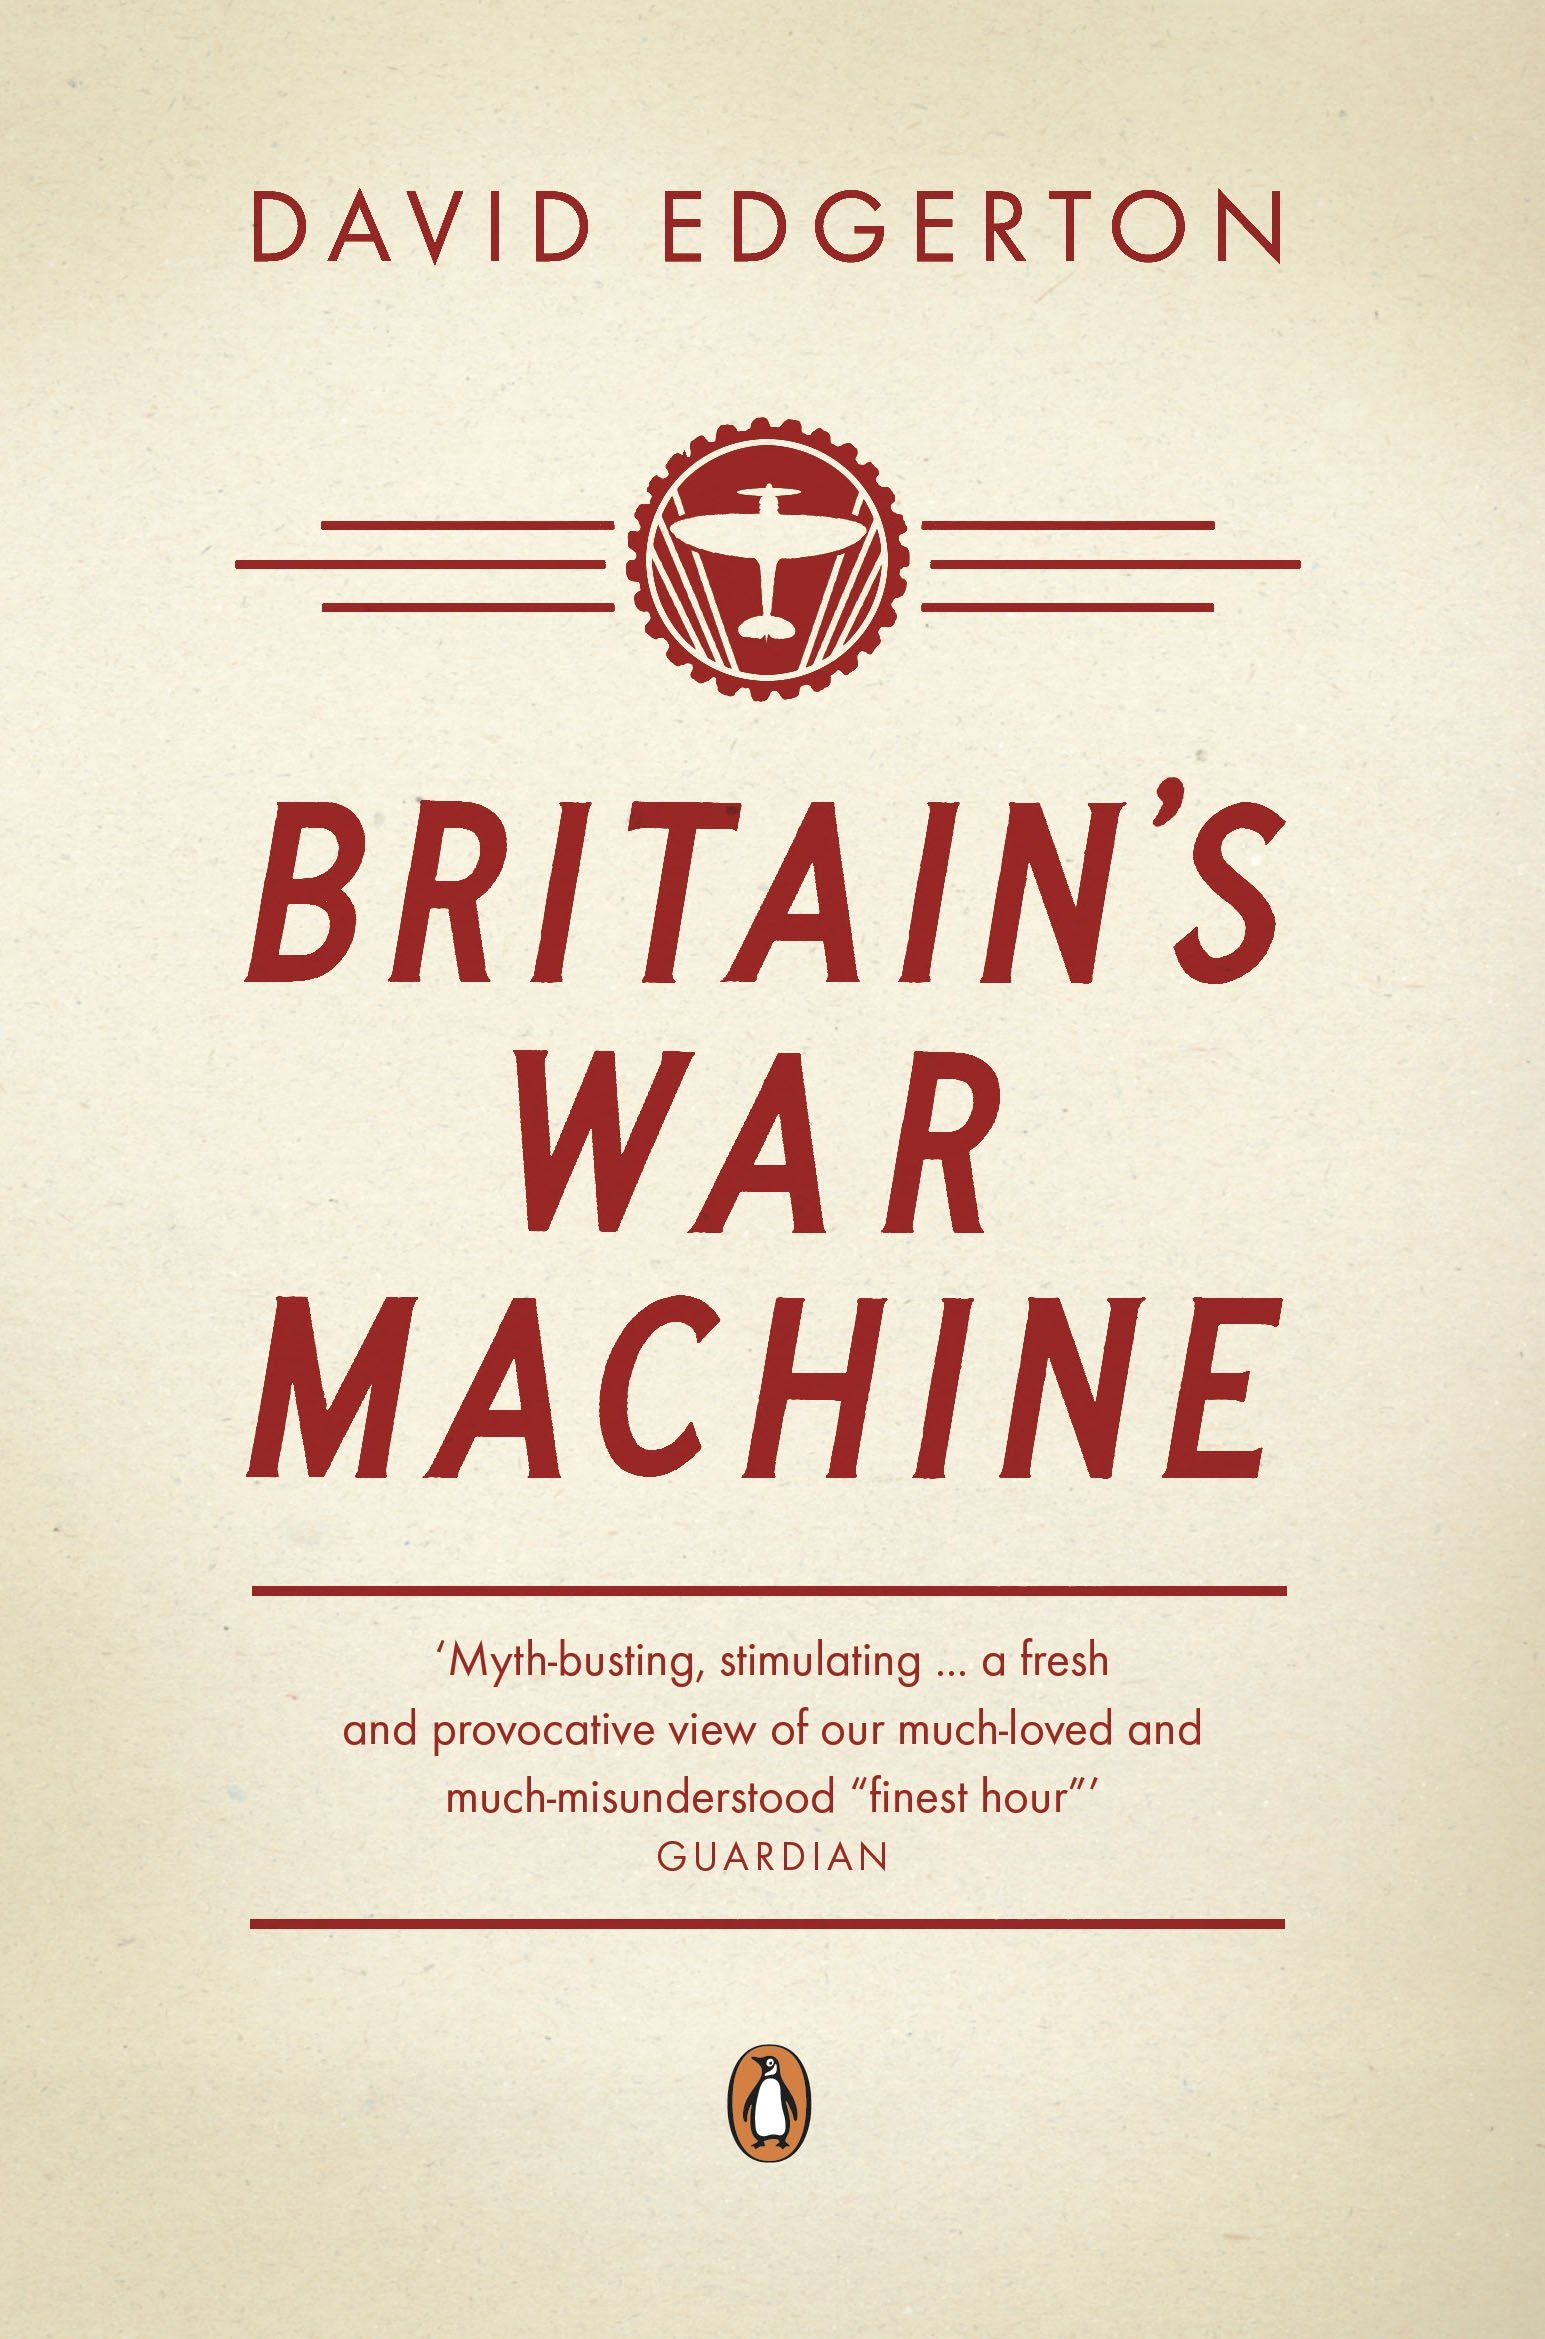 britains war machine weapons resources and experts in the second world war: decor uk accslx x